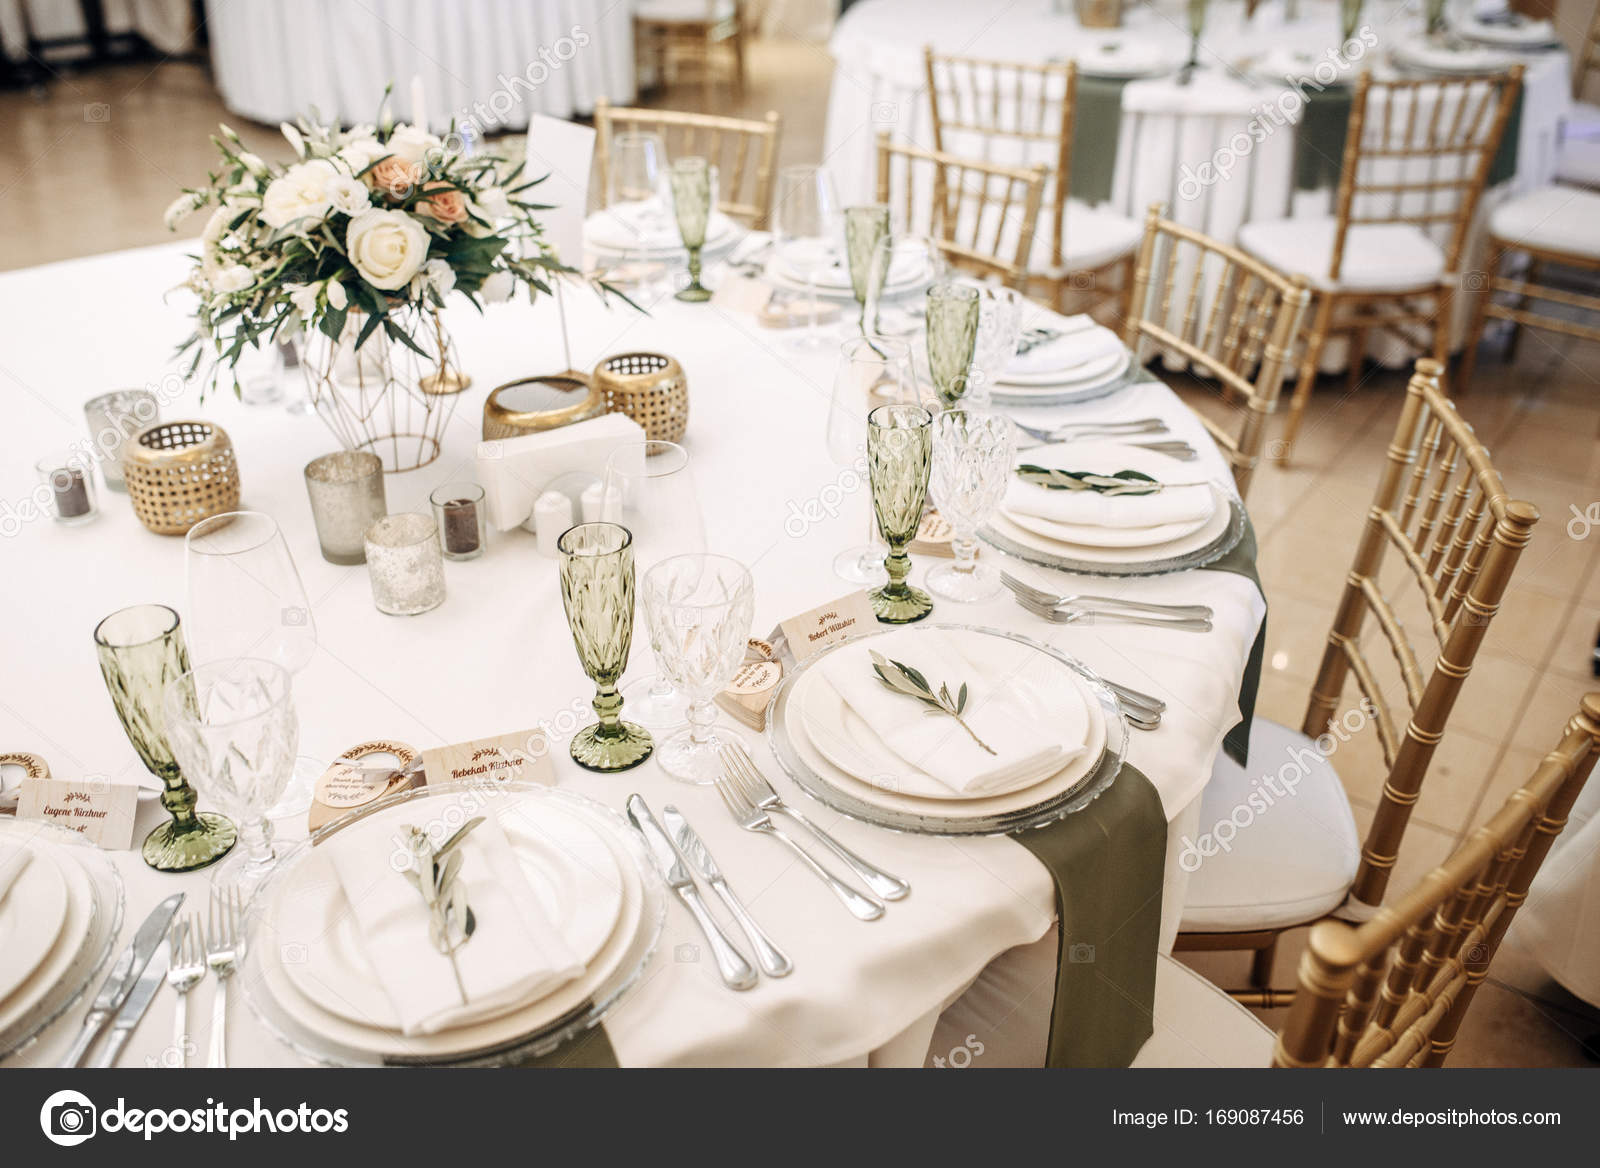 White Wedding Table Decorated With Flowers And Eucalyptus Plates